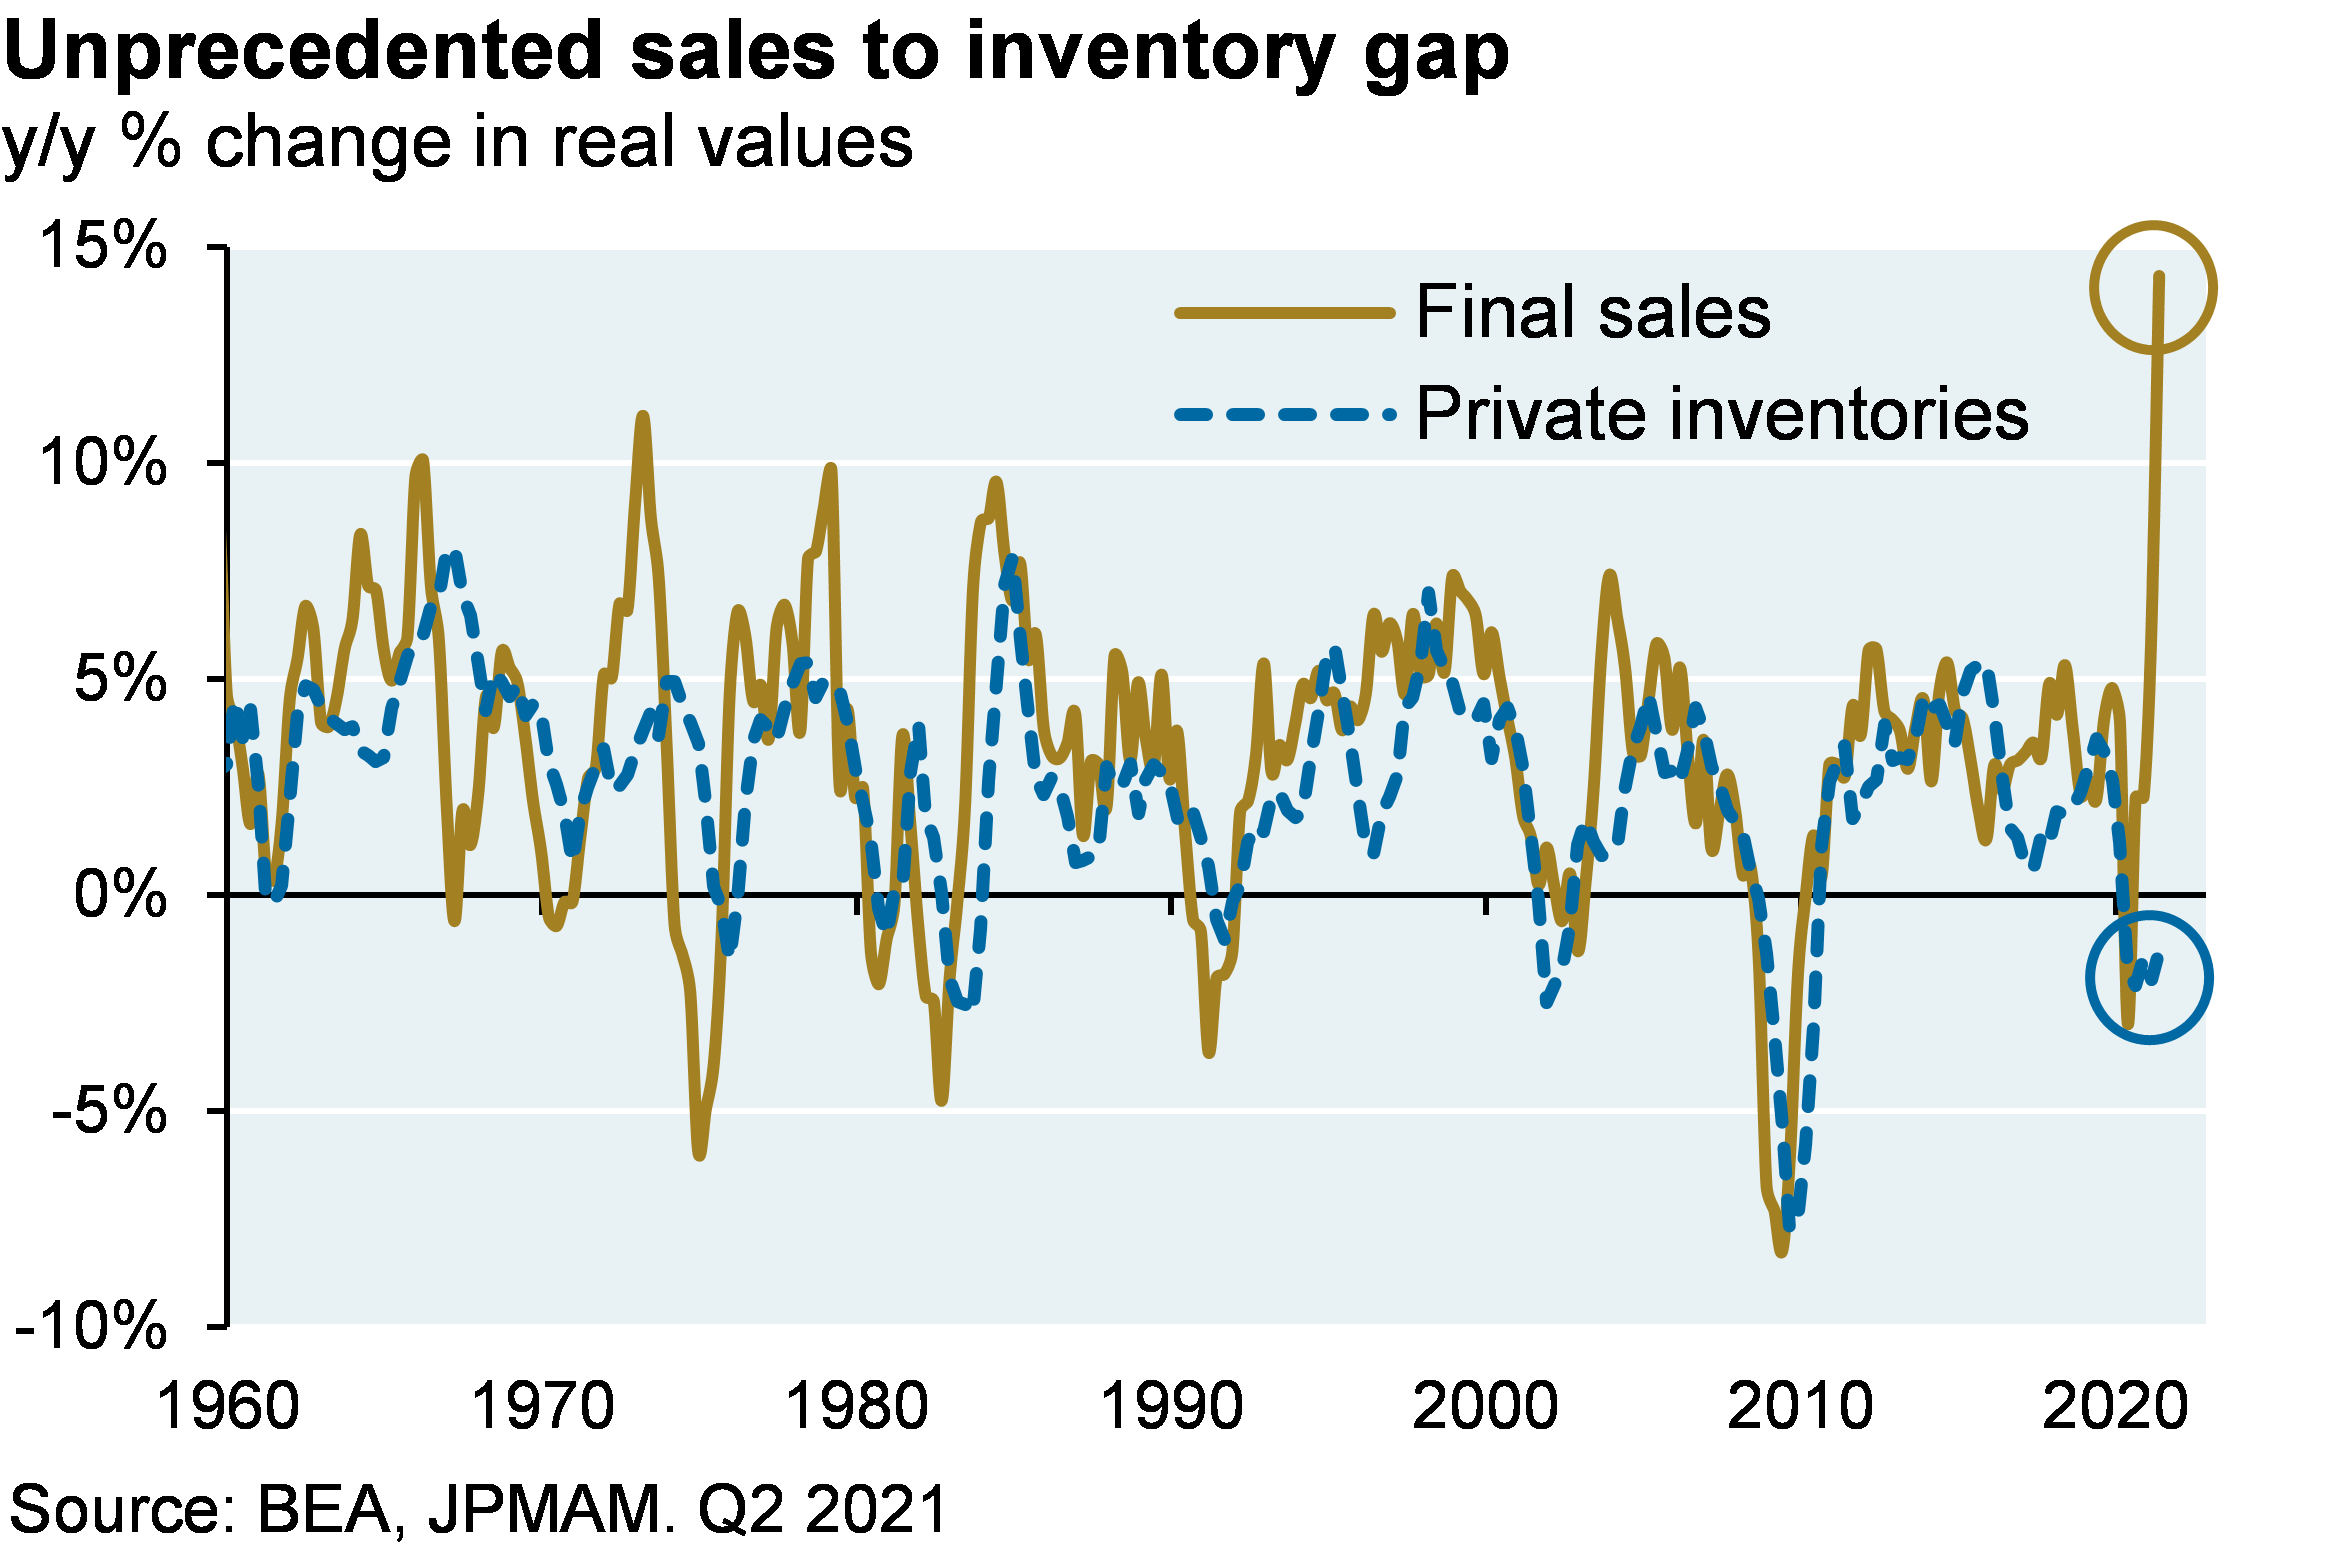 Line chart which shows the year over year percent change in real final sales and real private inventories. The chart shows that since 1960, inventory changes have typically tracked demand on a slight lag. However, there is now an unprecedented gap between inventory levels and final sales growth.